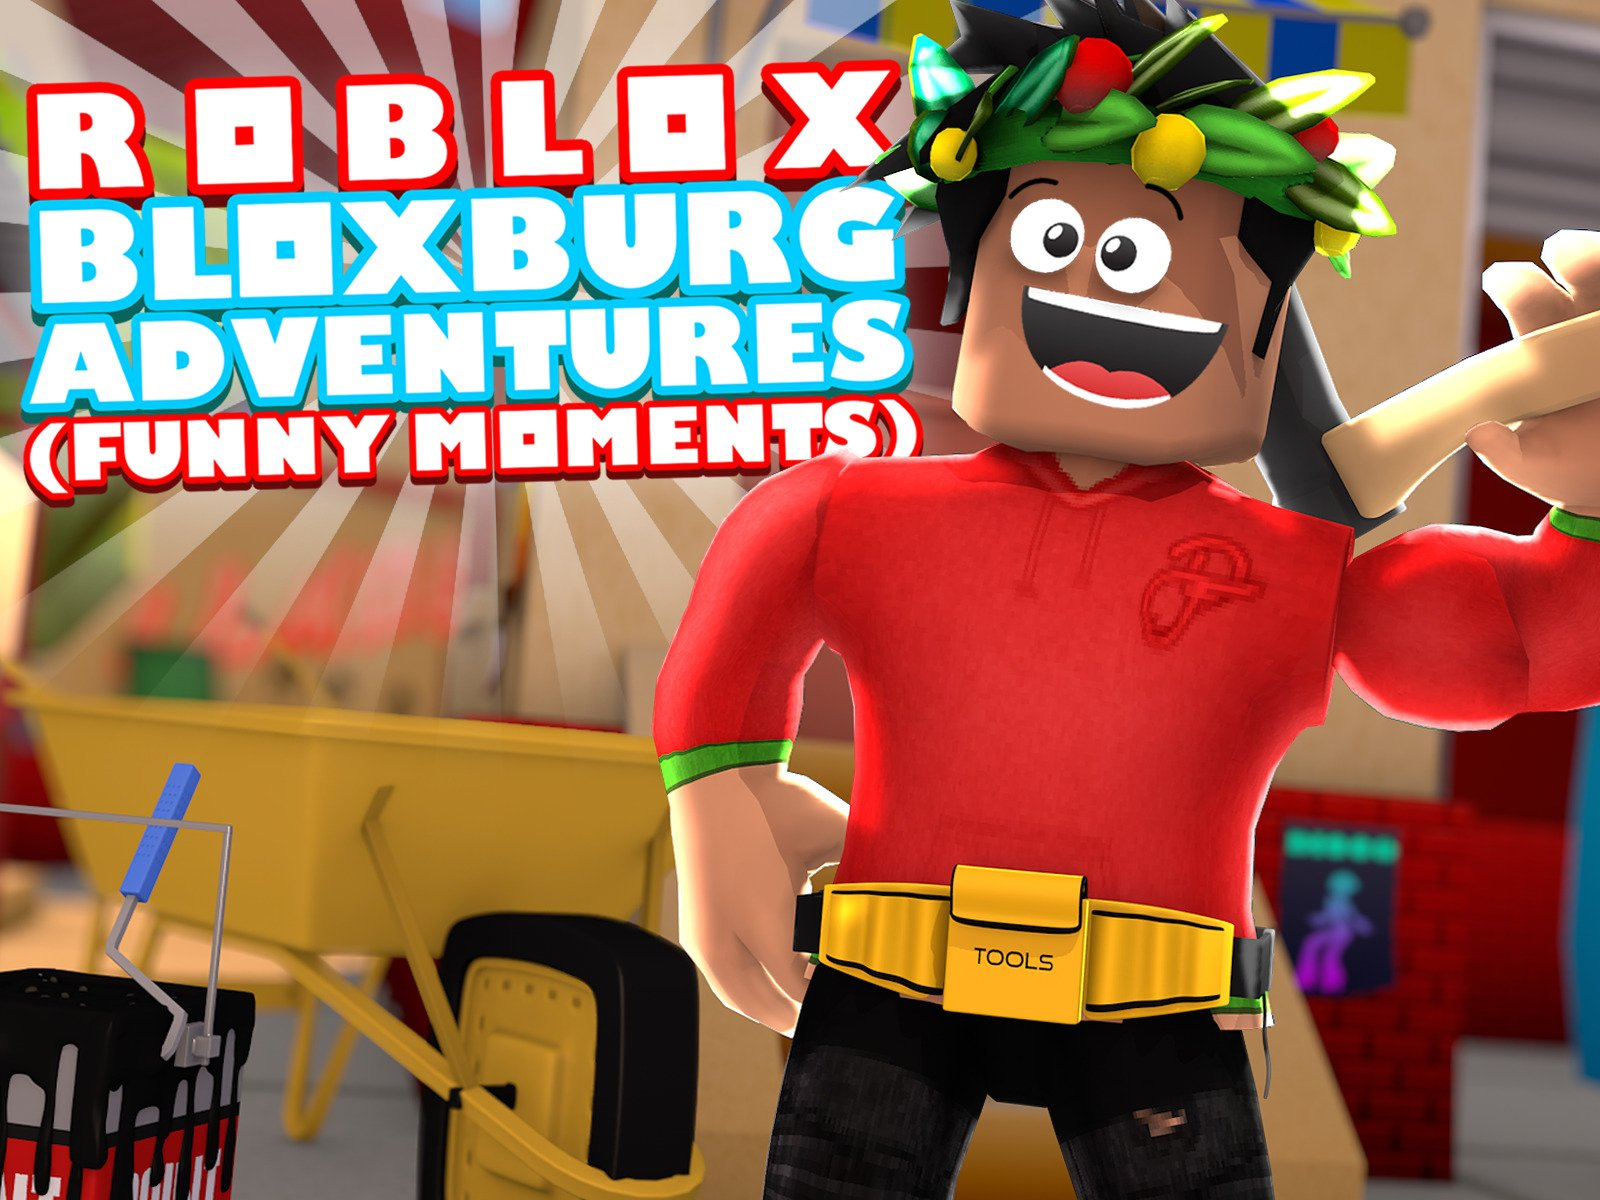 Clip: Roblox Bloxburg Adventures (Funny Moments)